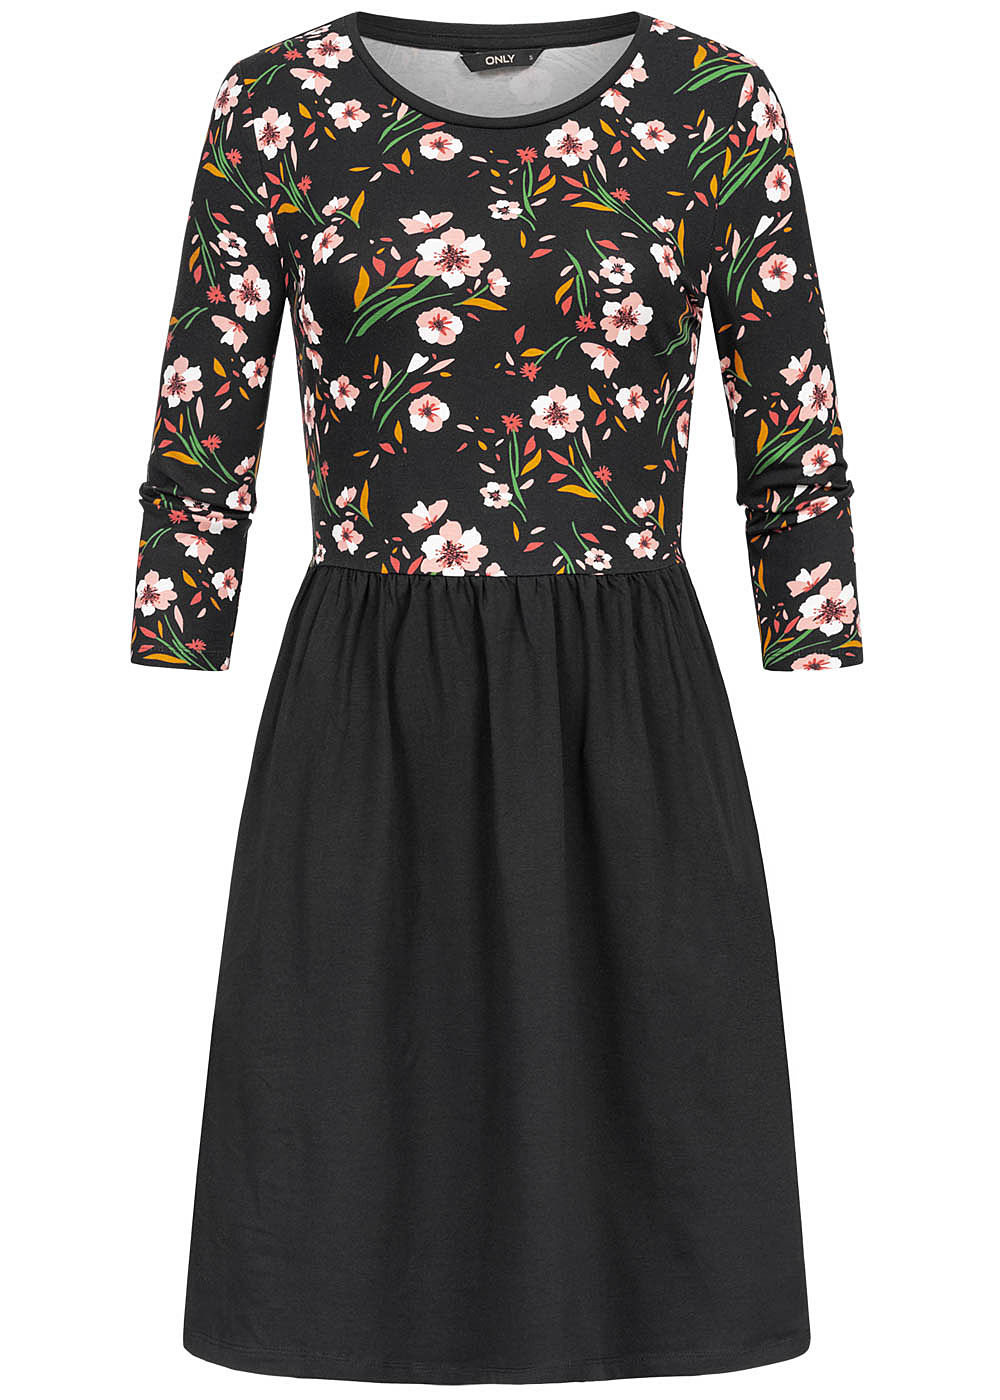 ONLY Damen 3/4 Sleeve Dress Flower Print schwarz rosa weiss - Art.-Nr.: 19083347